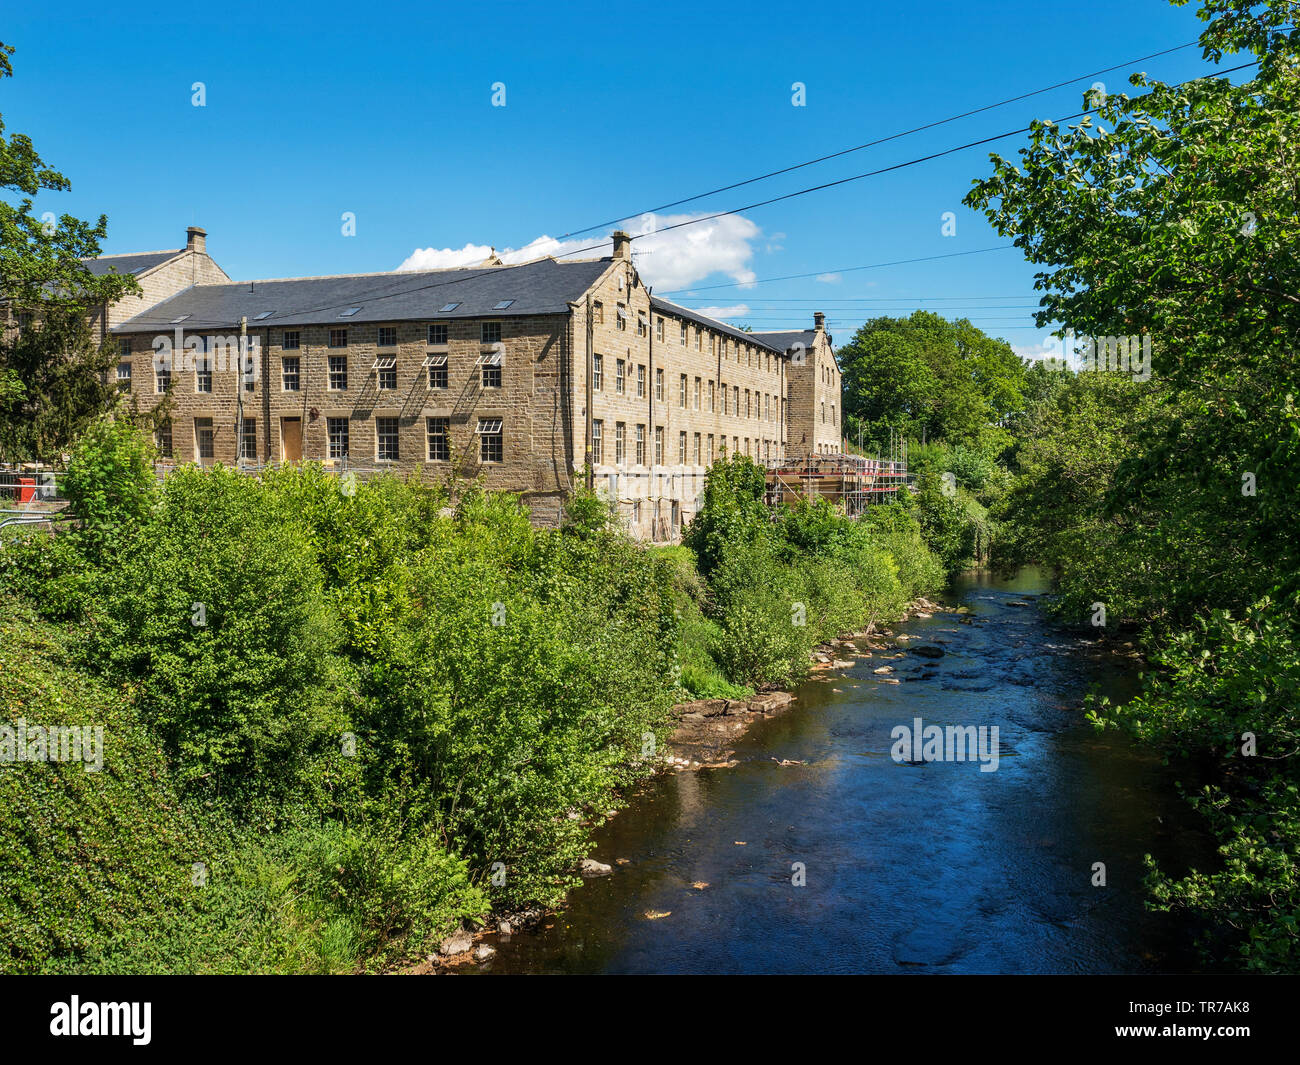 Glasshouses Mill undergoing conversion to residential use Glasshouses near Pateley Bridge North Yorkshire England - Stock Image